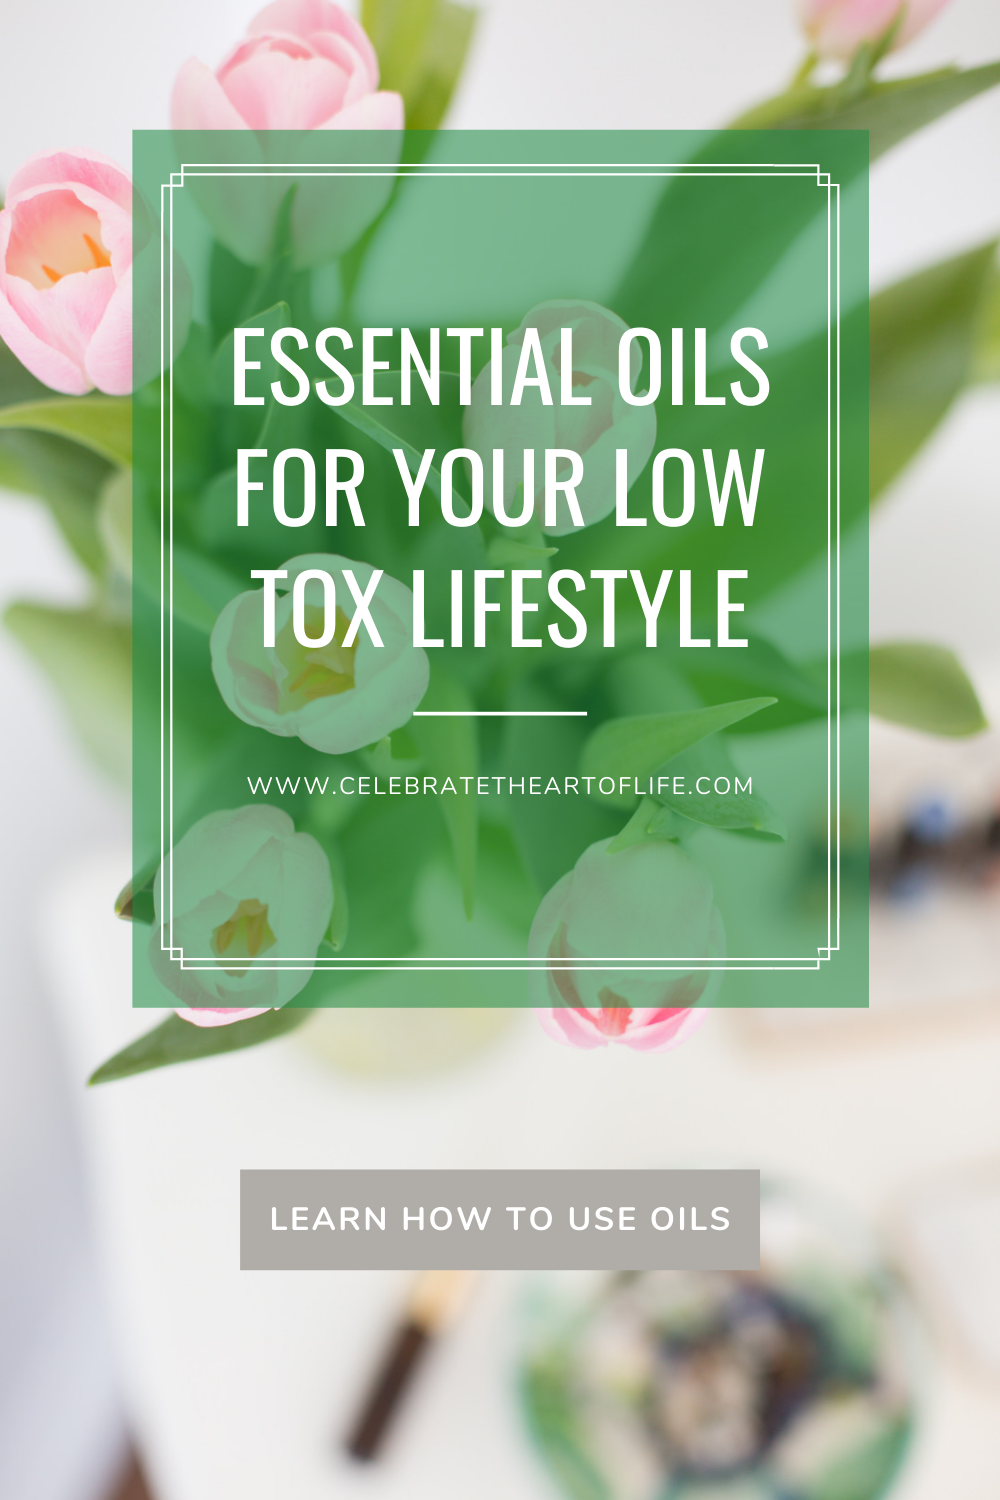 Essential Oils for your Low Tox Lifestyle